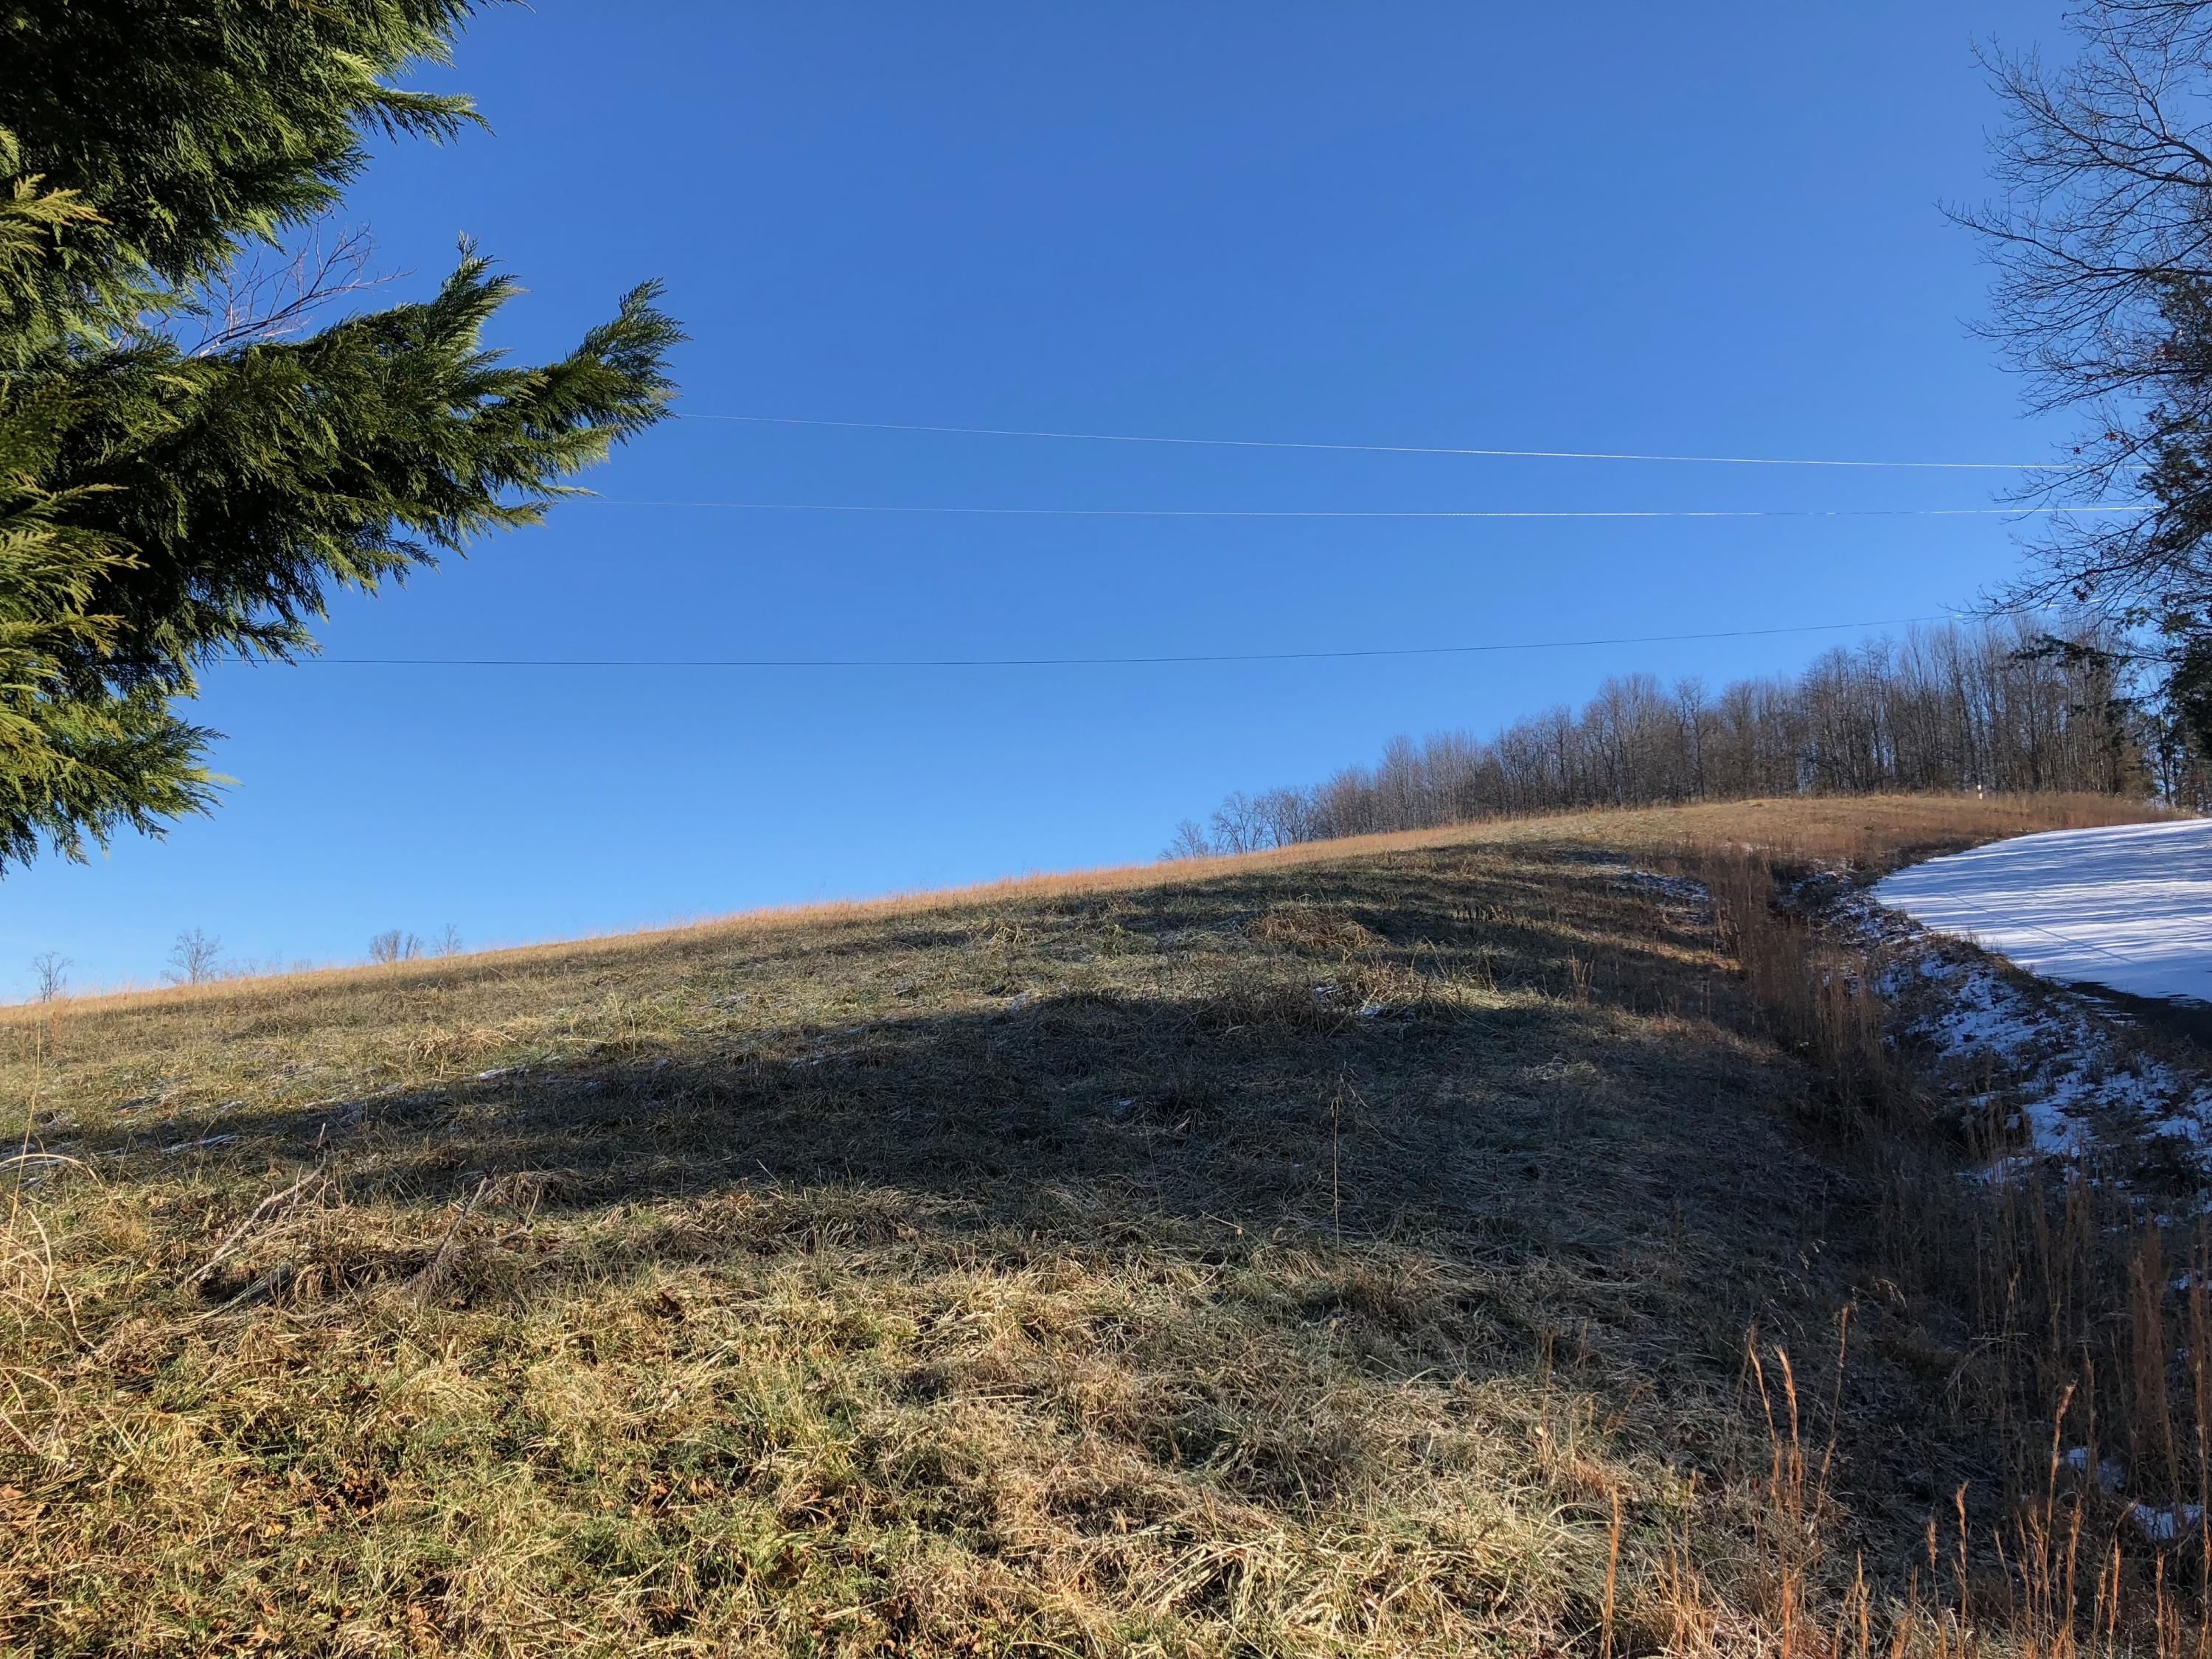 Lot 27 Bob Wright Rd, Maynardville, Tennessee 37807, ,Lots & Acreage,For Sale,Bob Wright,1027992